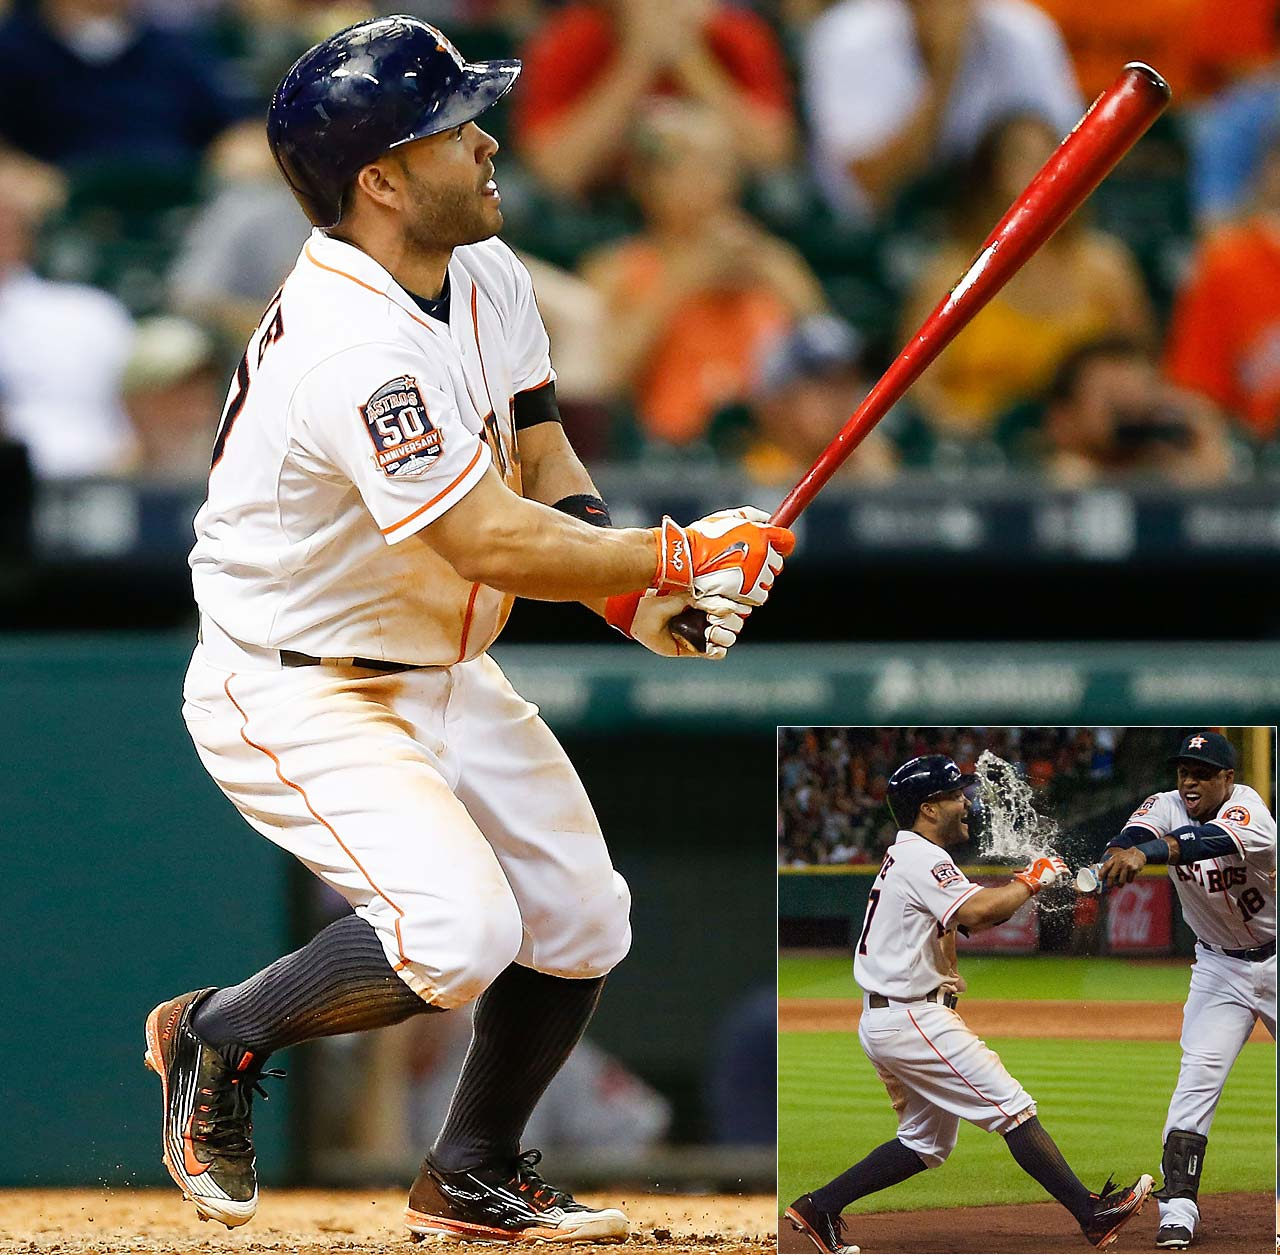 Jose Altuve delivered a solo shot in the ninth inning on July 23 to give the Houston Astros a 5-4 victory over Boston.